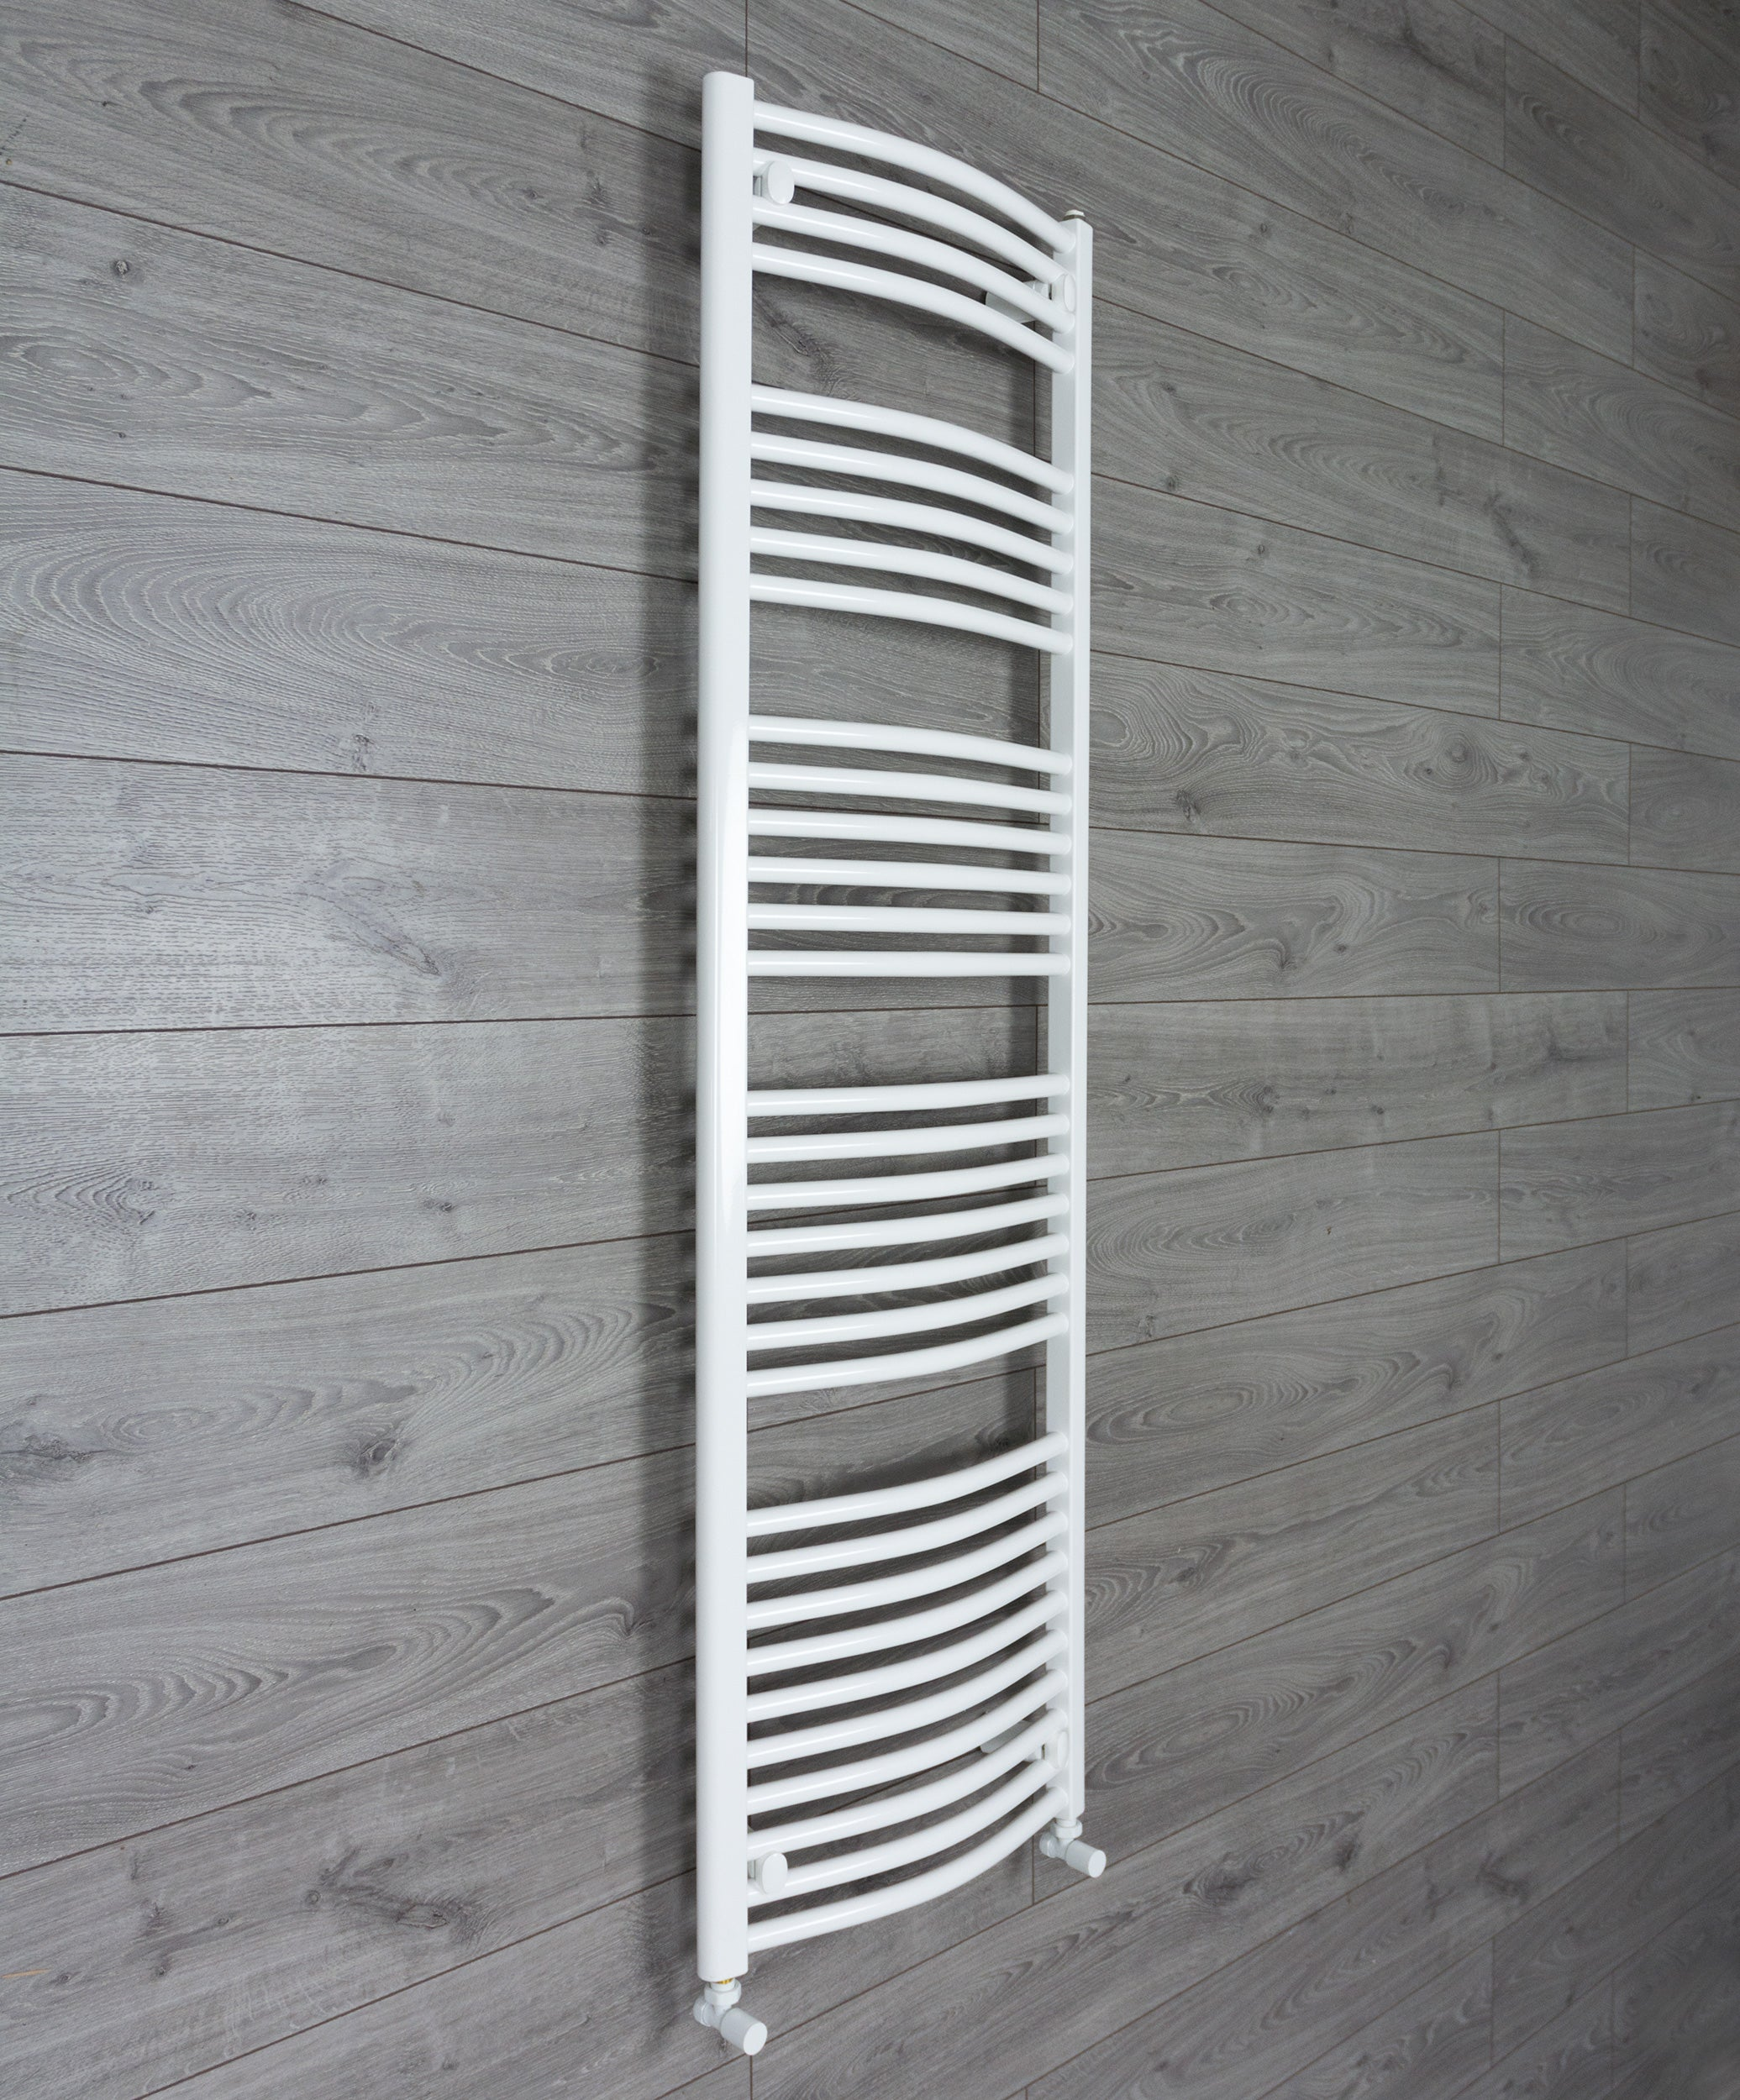 1600 mm High 500 mm Wide Heated Curved Towel Rail Radiator White Central heating or Electric angled valves